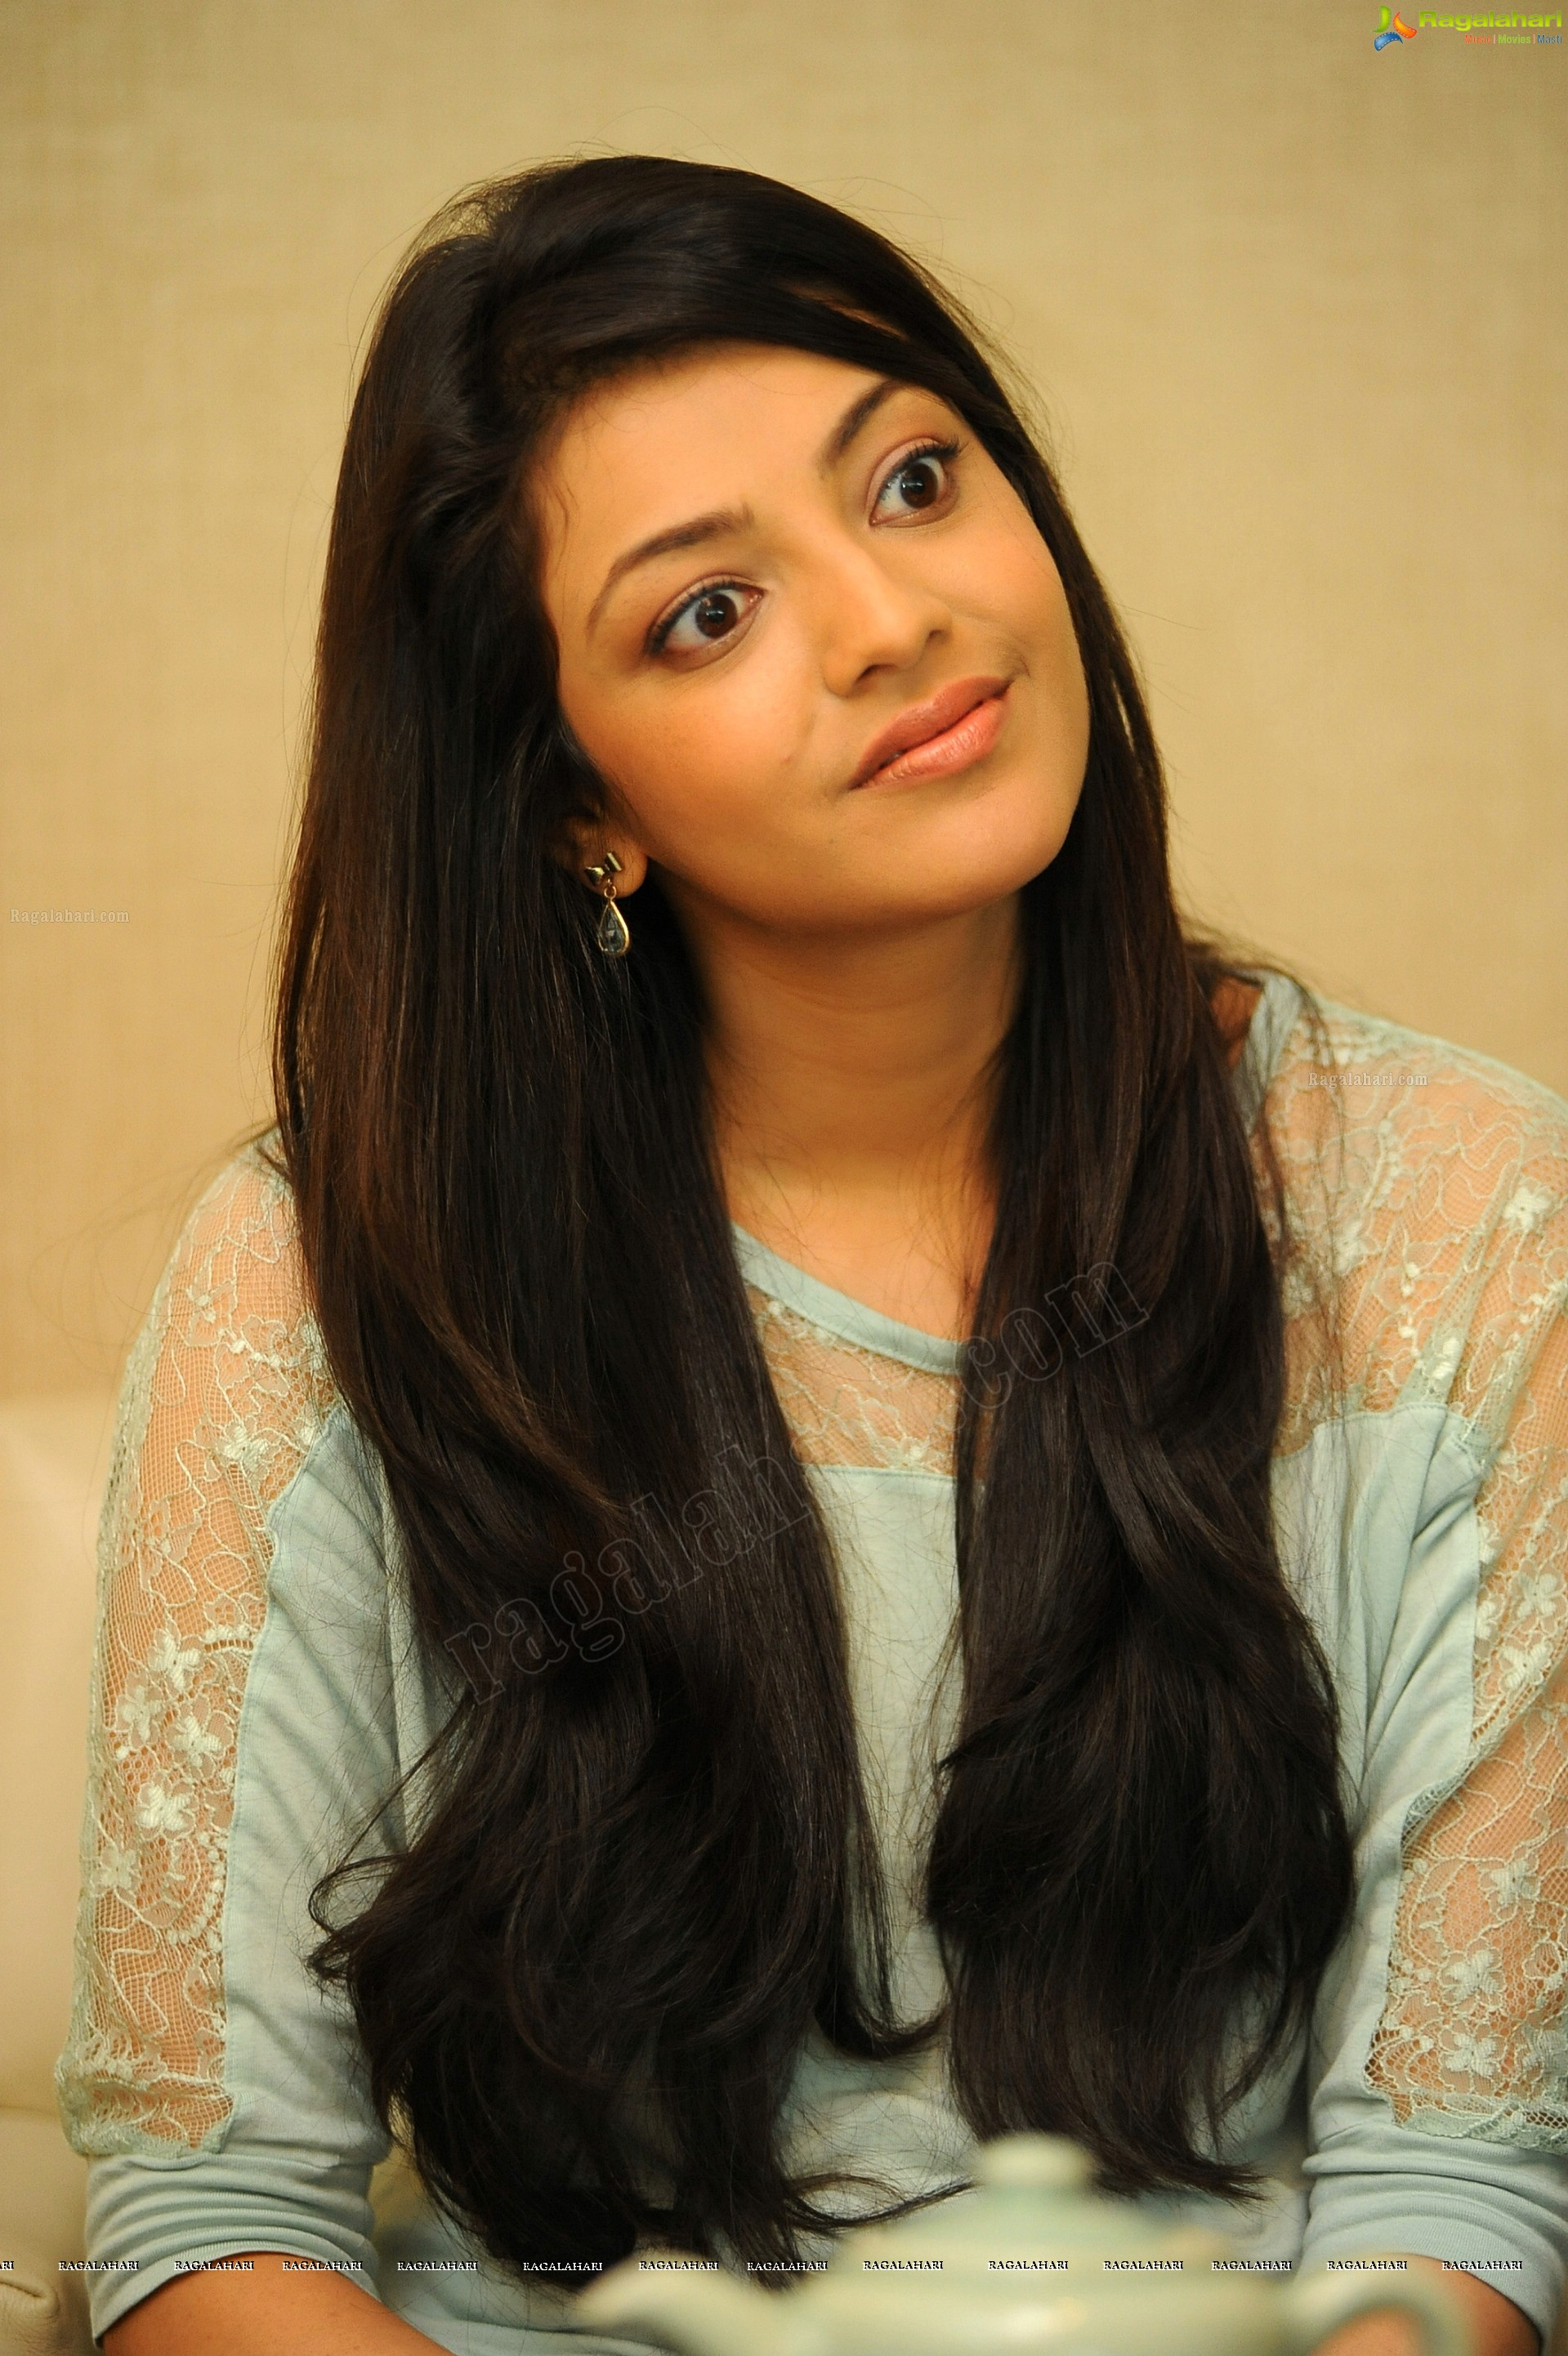 kajal agarwal (hd) image 8 | telugu heroines photos,images, photos